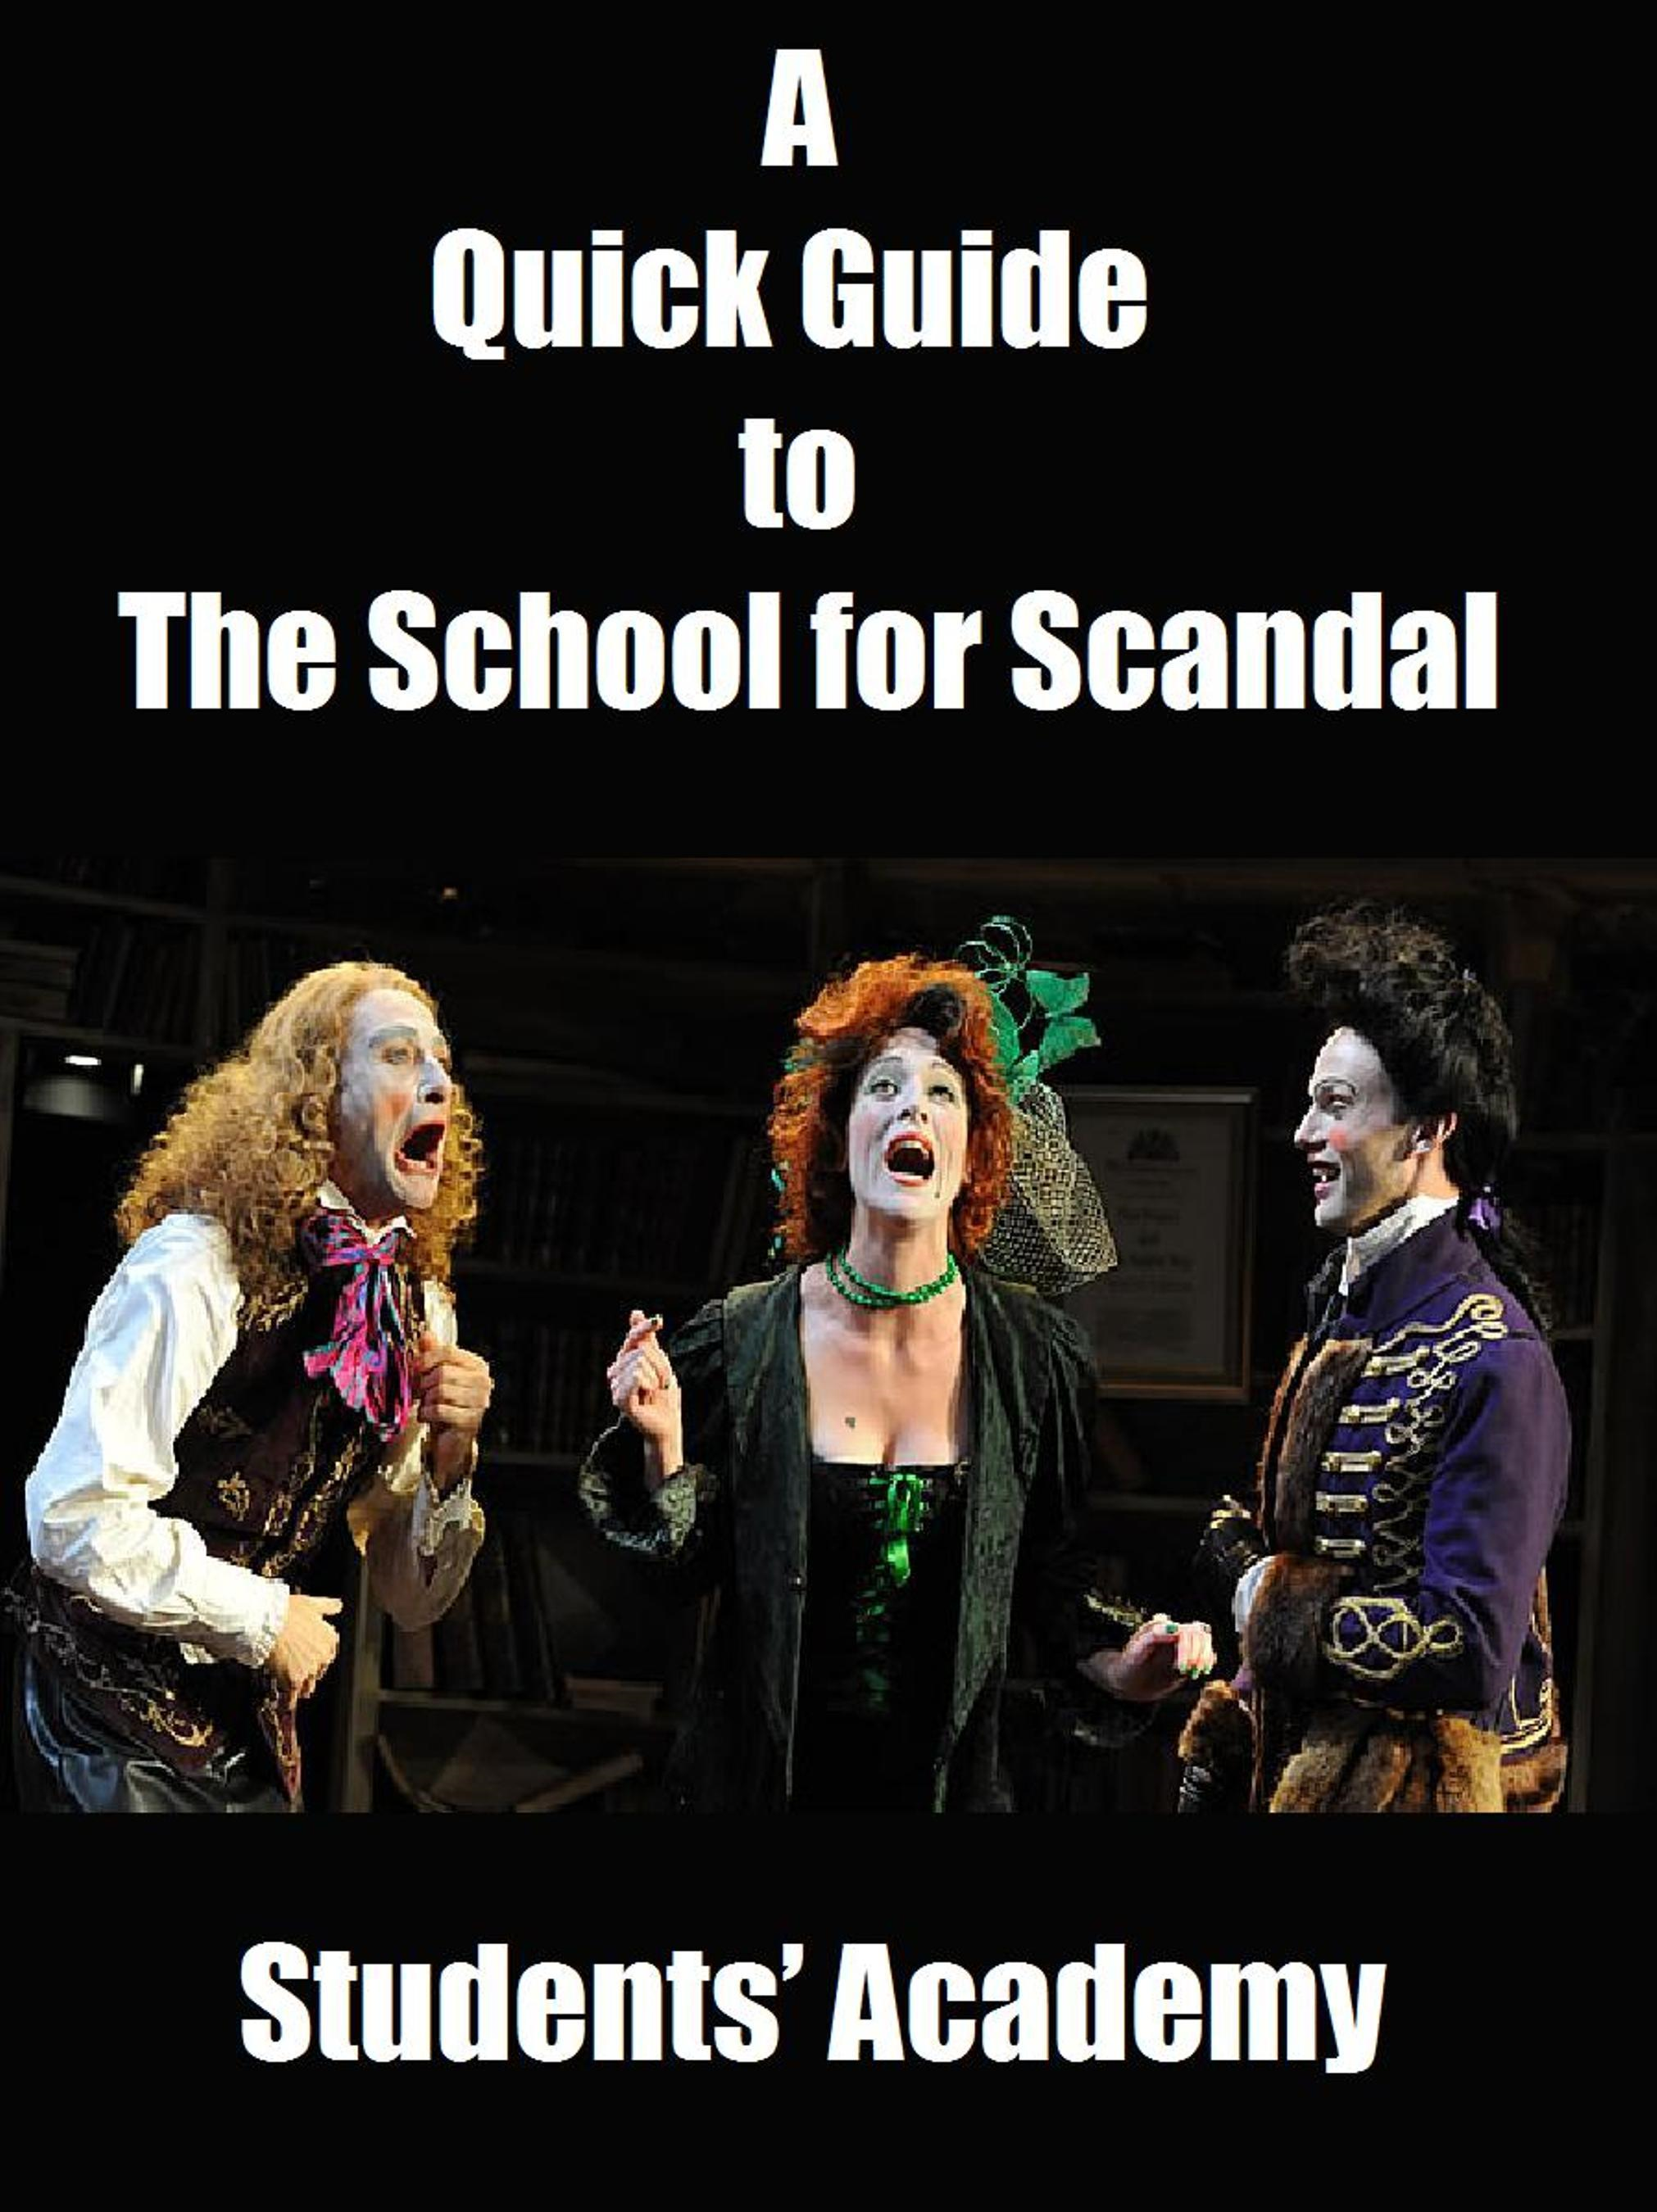 A Quick Guide to The School for Scandal